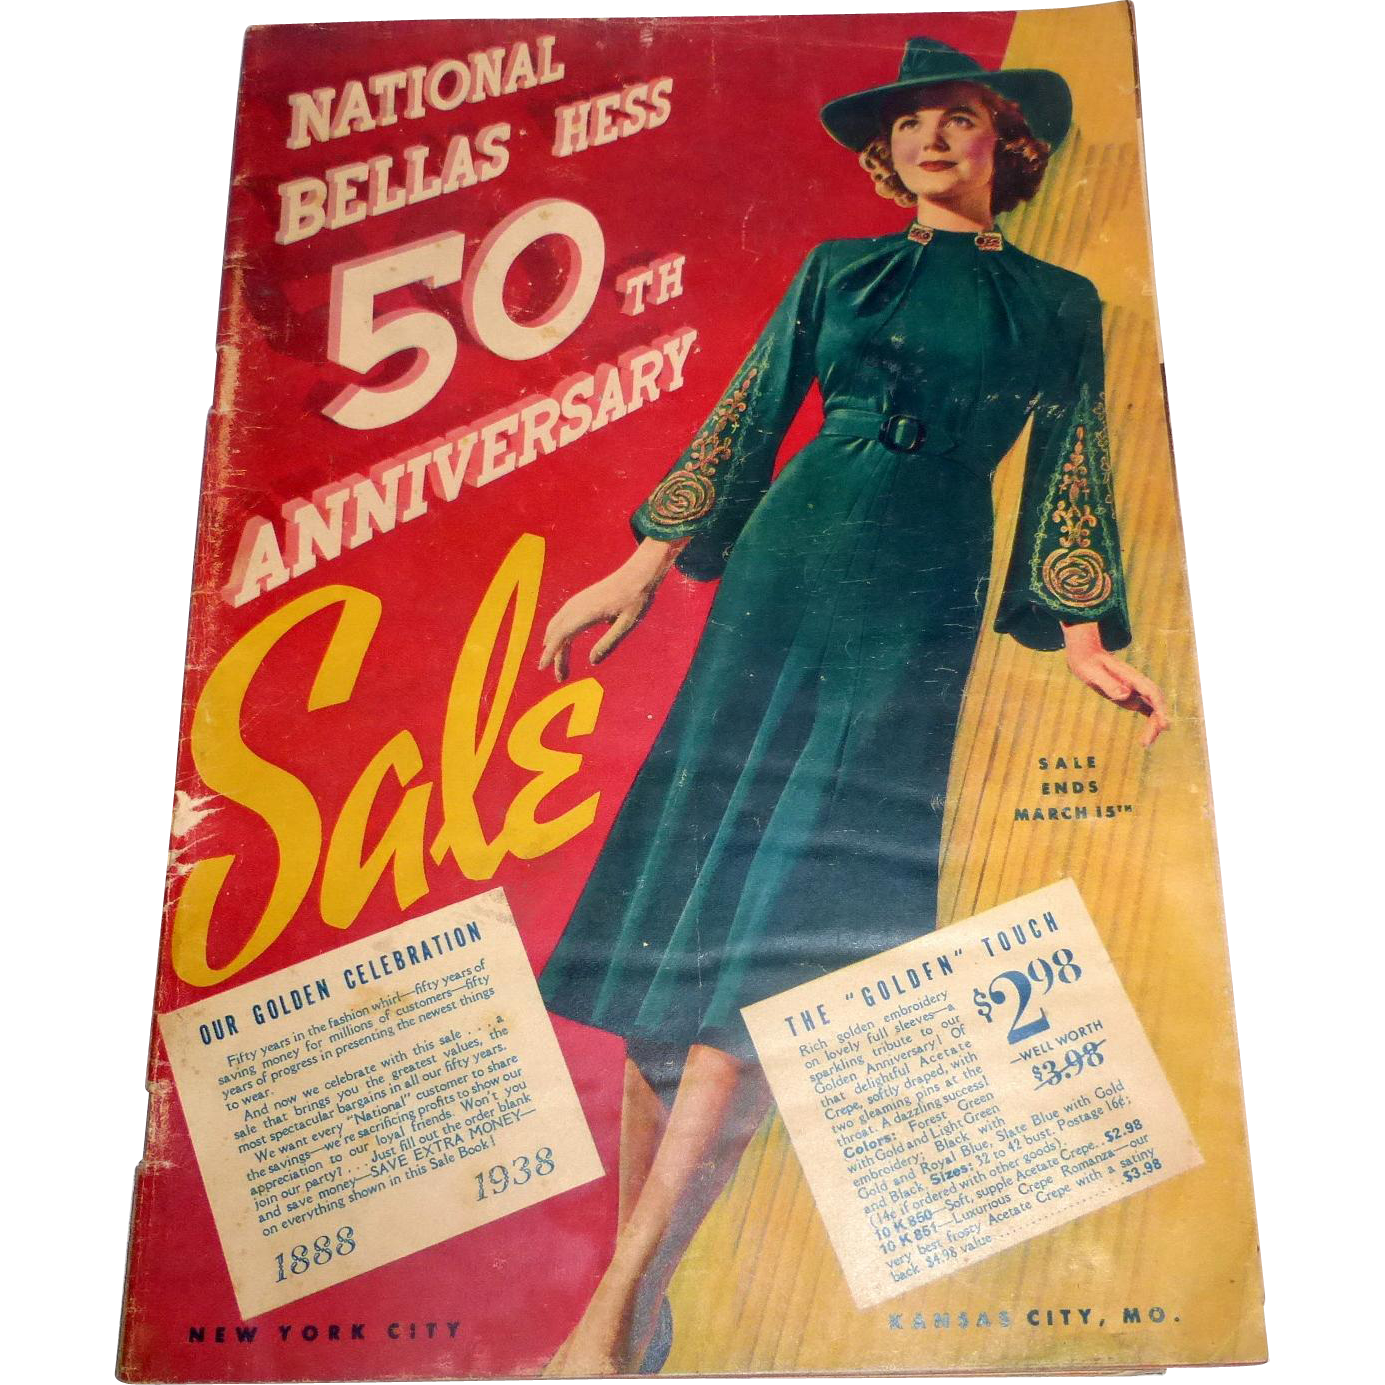 1938 National Bellas Hess 50th Anniversary Sale 71 page Fashion & Fabric Catalog